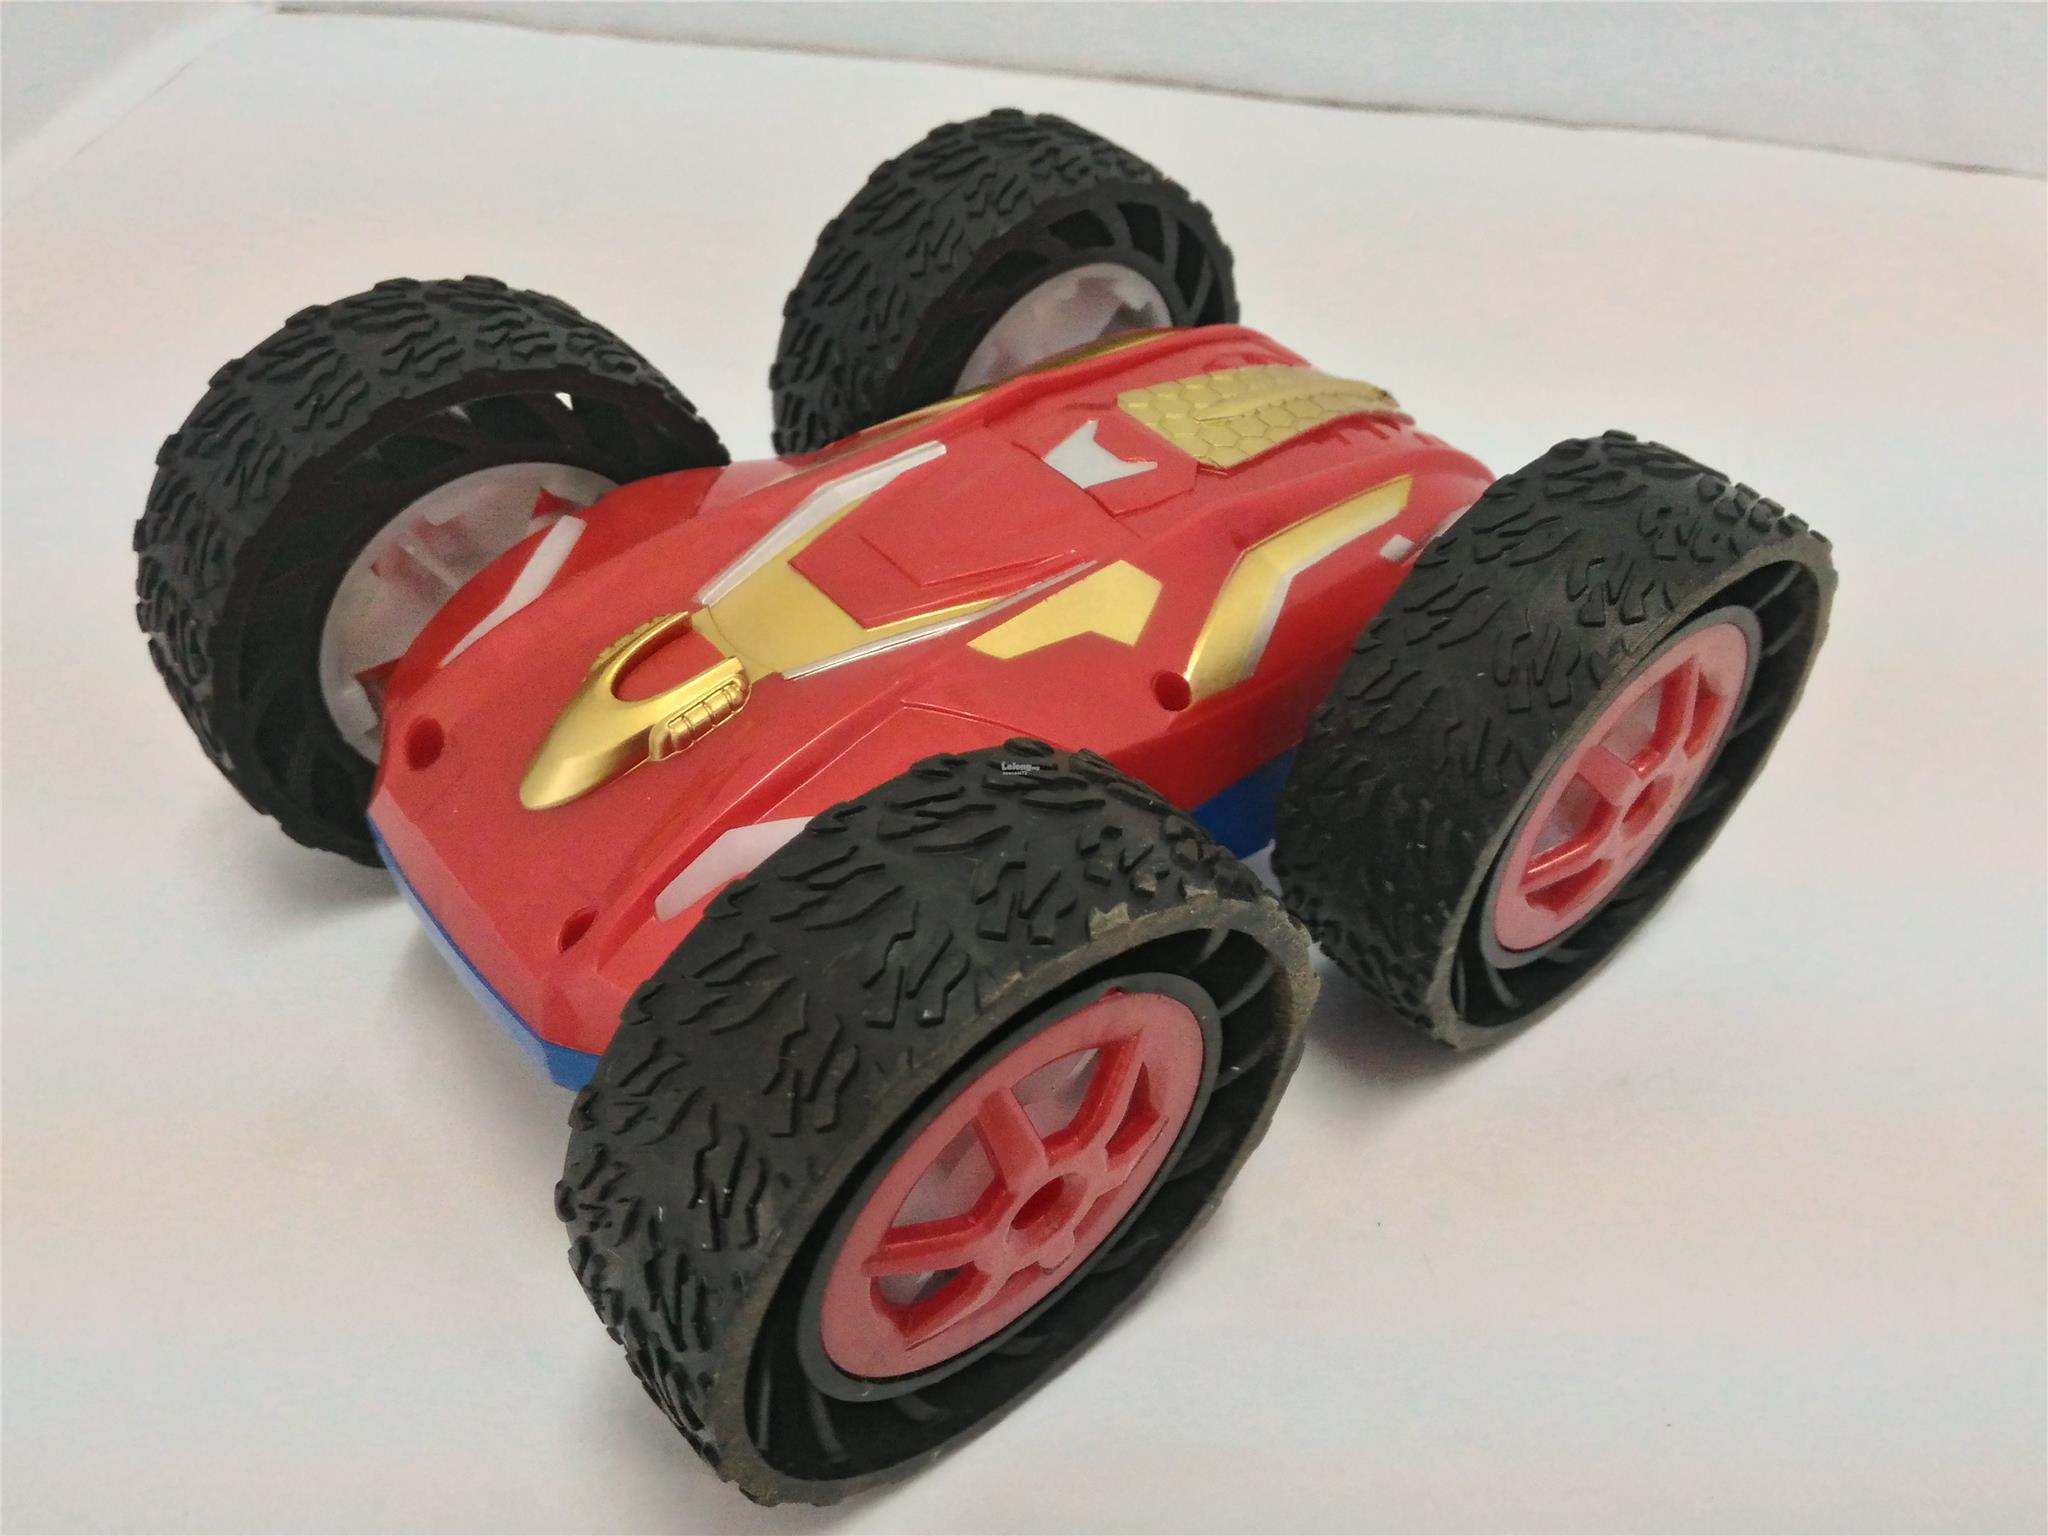 remote control flying car with Samewin 9888 Double Sided Flip Remote Control Road Race Car New 72 187151764 2017 01 Sale P on B Unstoppable Tank Quadcopter Drone as well 122383754177 also Cool And Cheap Toy Drones For Kids together with You Built What Retired Engineer Crafts Colossal Gliding Model 1935 Airship additionally Back To The Future Mag ic Floating Delorean Time Machine.